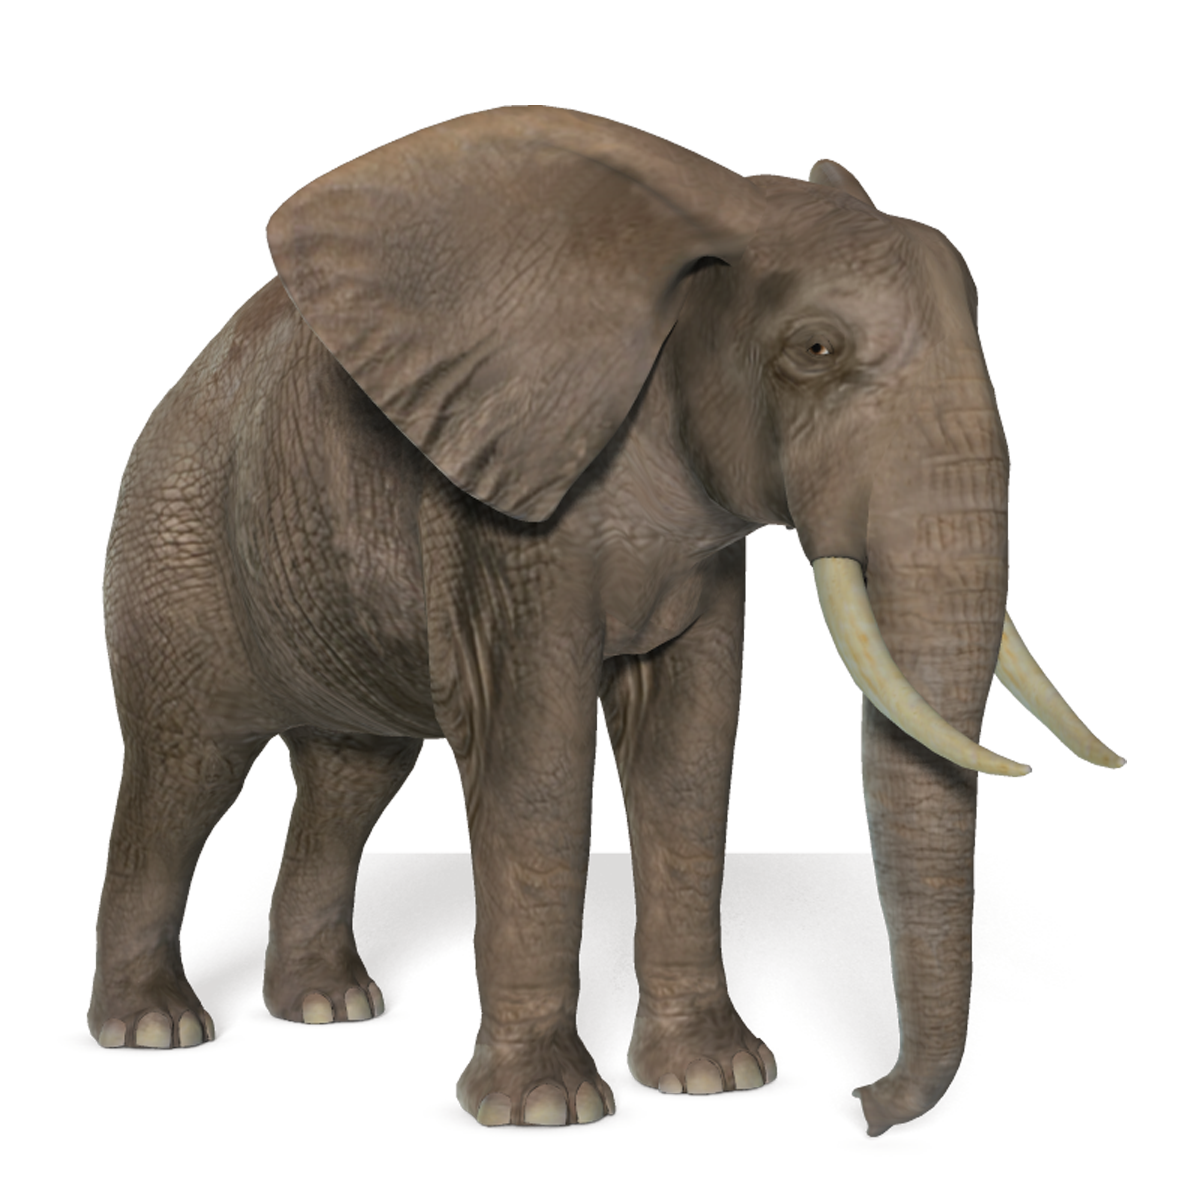 Elephant Png Picture image #43228